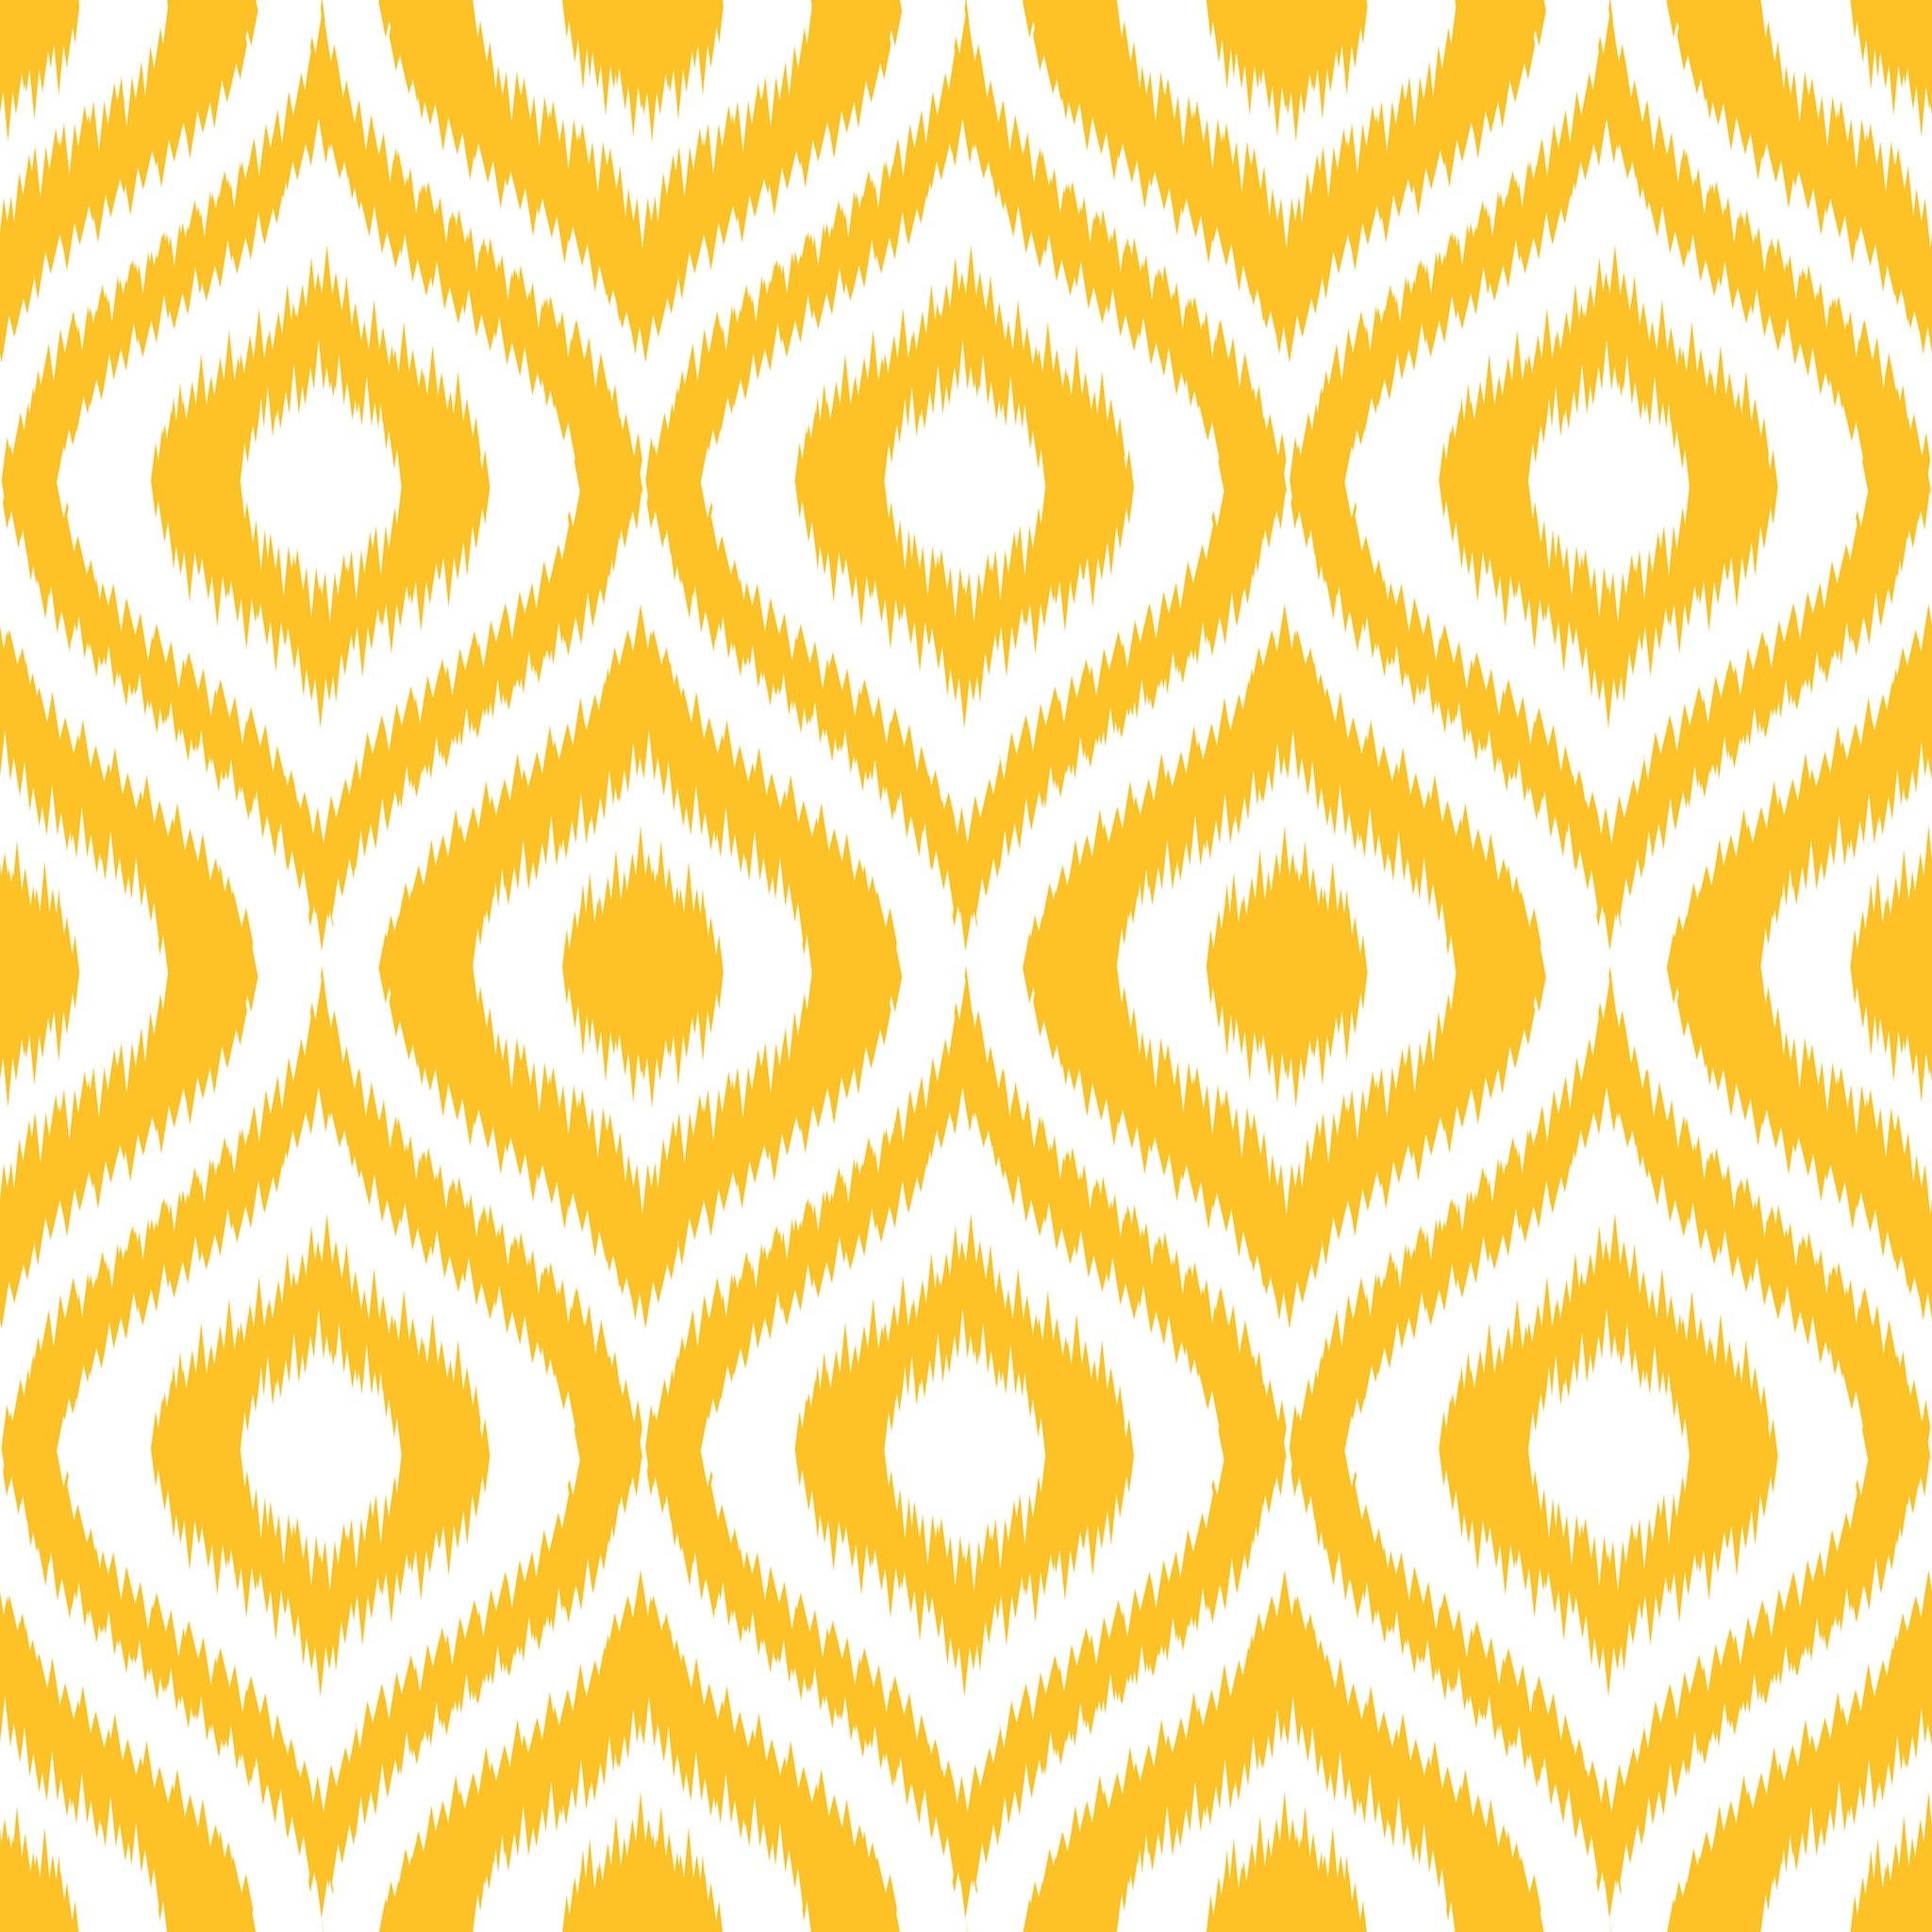 tribal patterns - Google Search | Home staging | Pinterest ... - photo#29